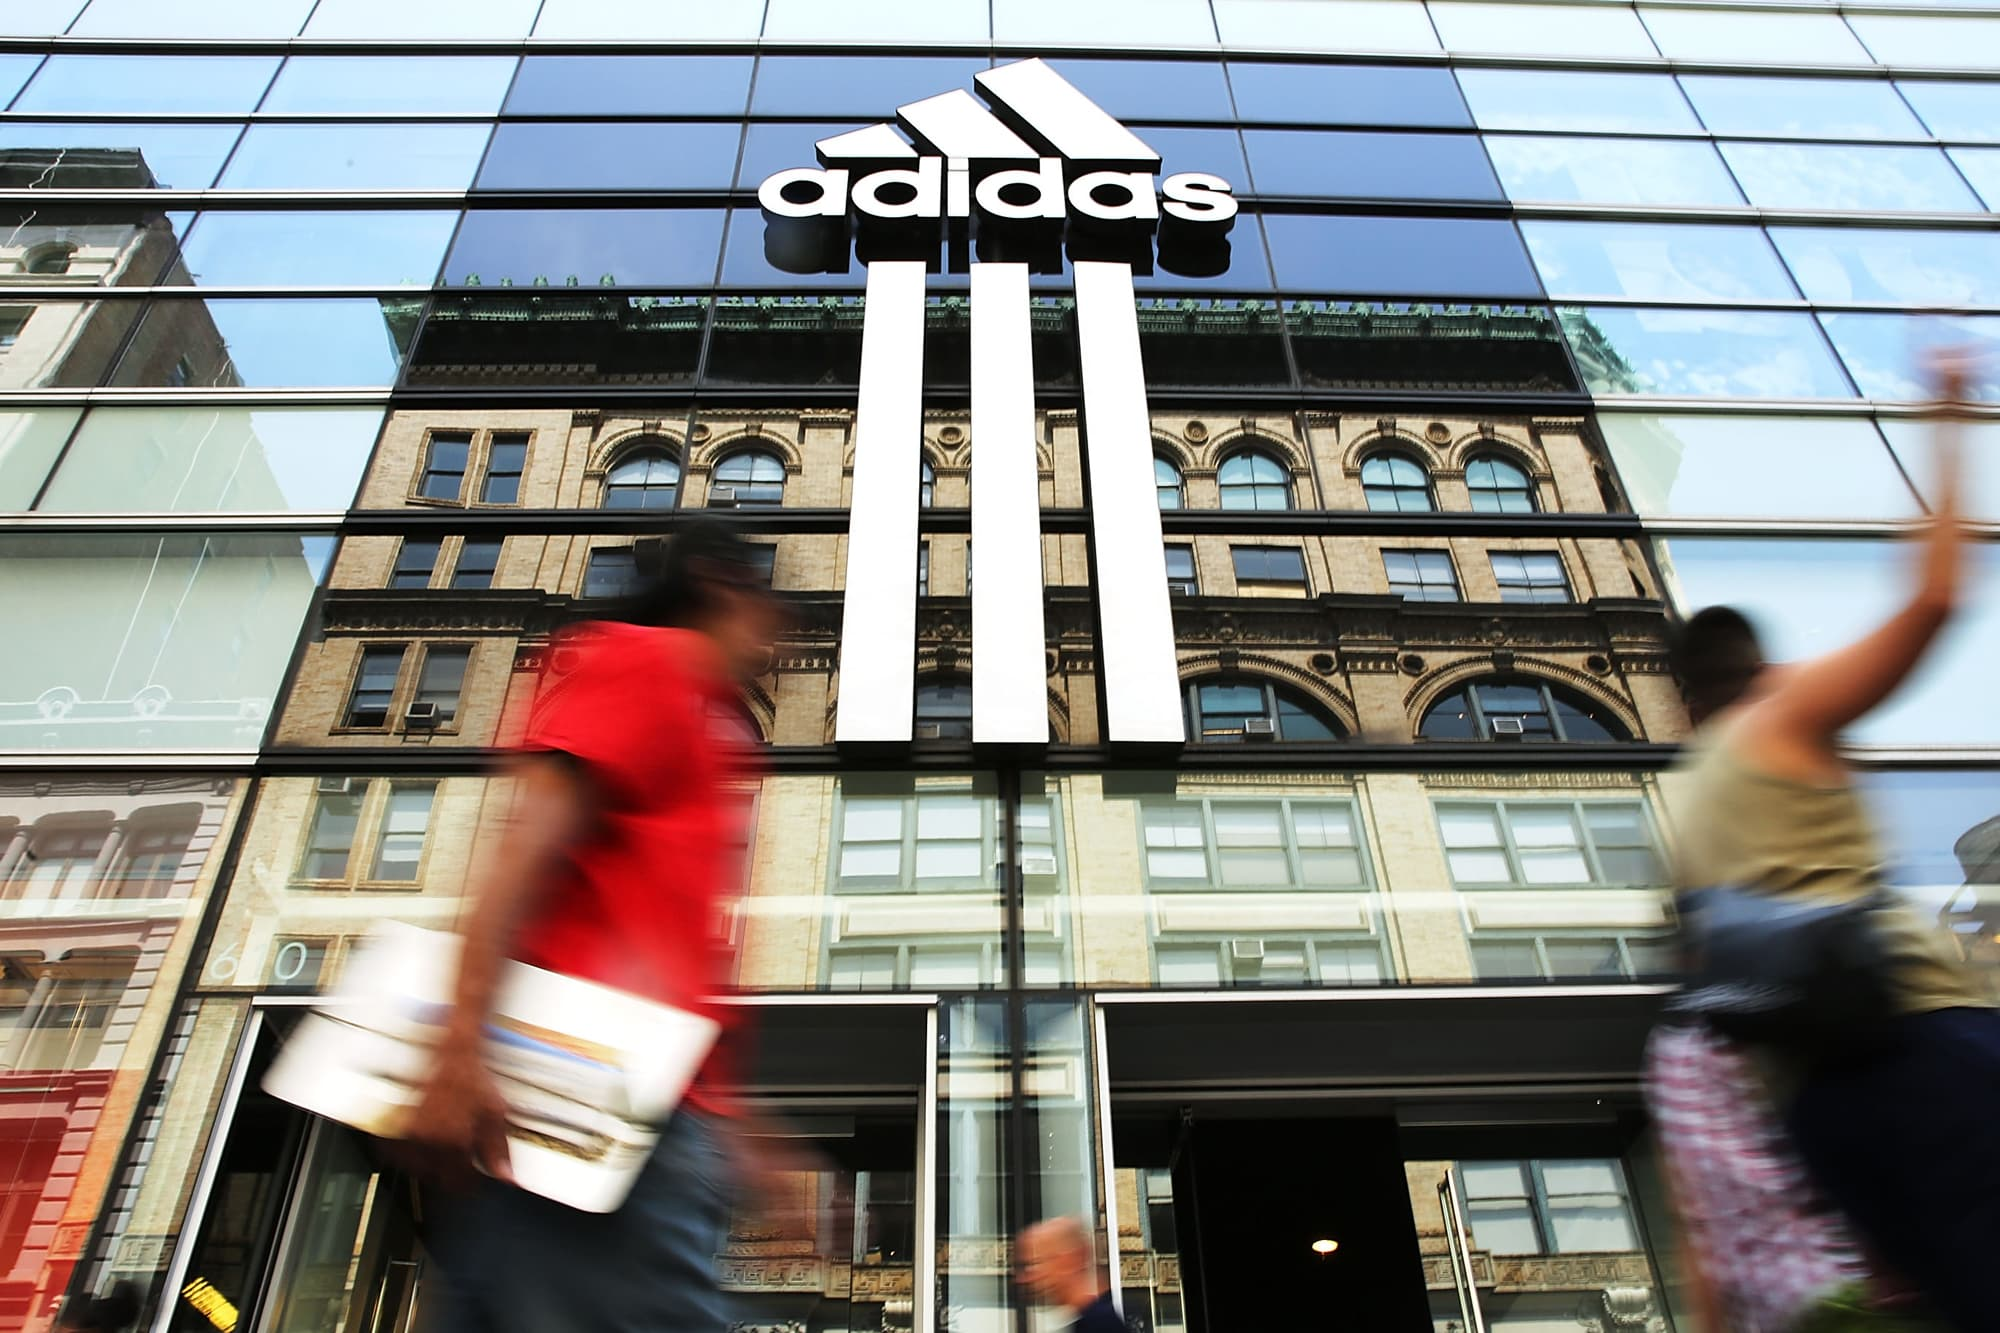 Adidas shares hit record high after profits beat expectations